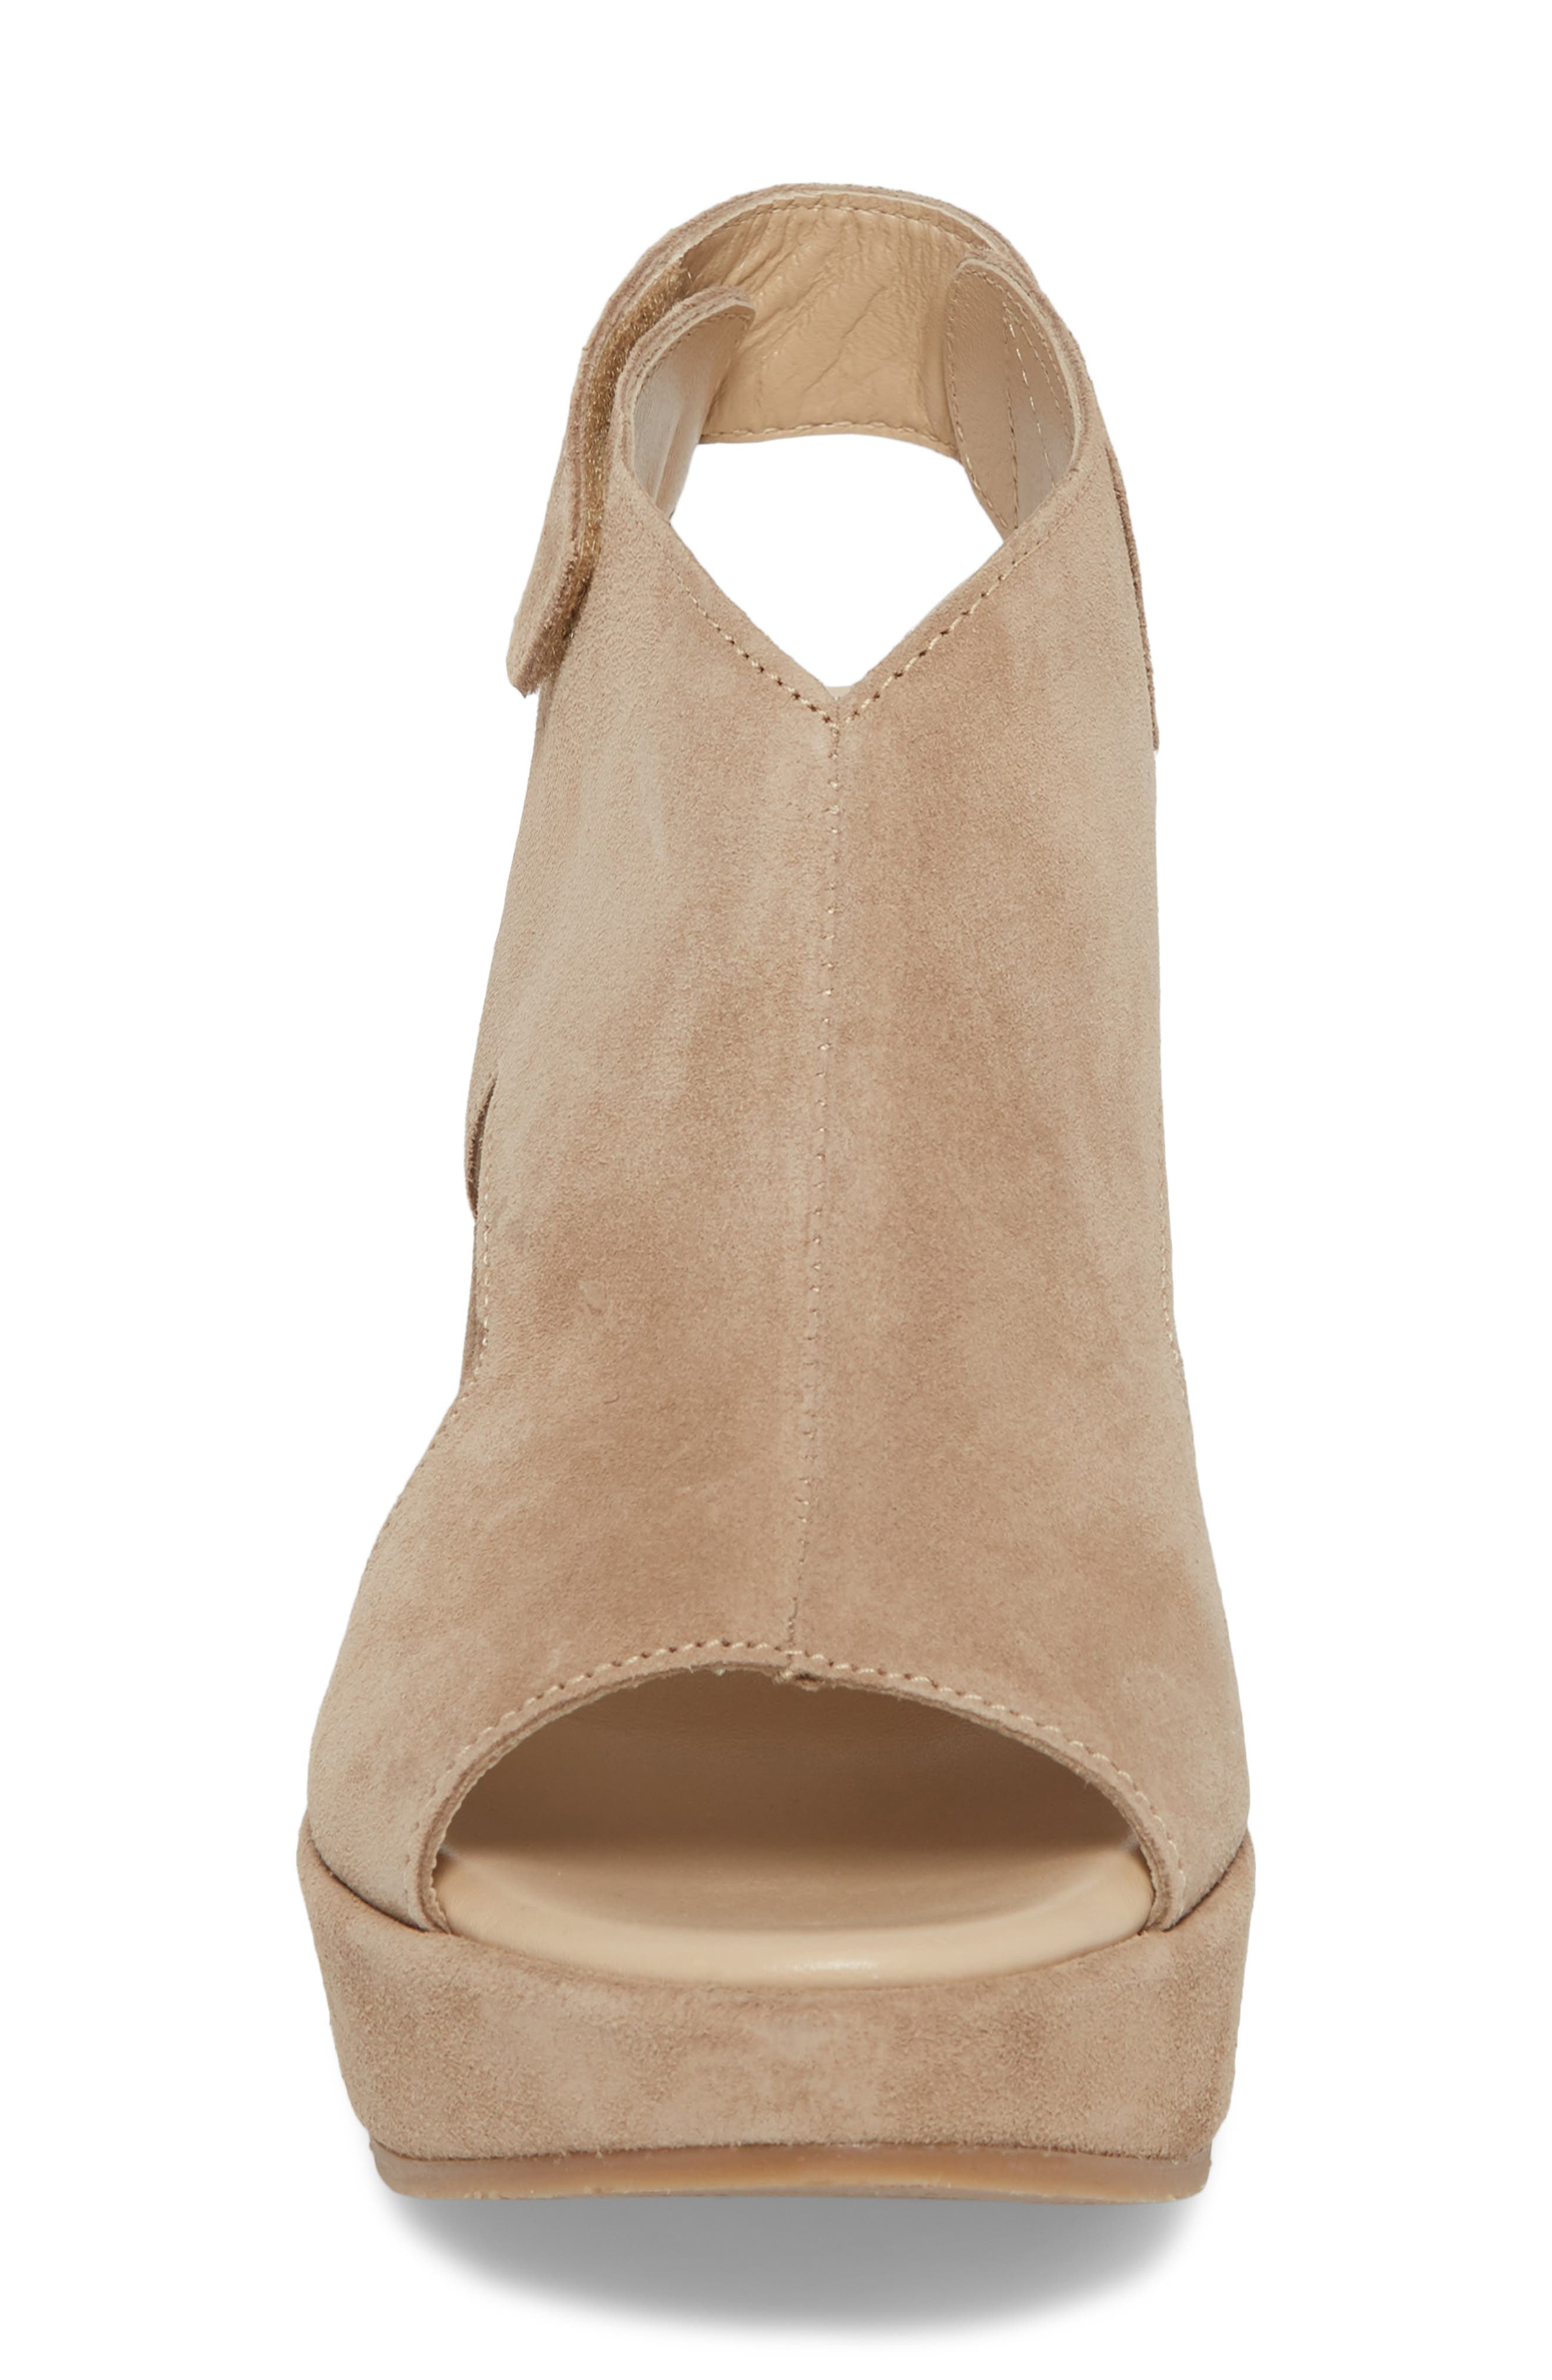 Reed Wedge Sandal,                             Alternate thumbnail 4, color,                             Corda Taupe Suede